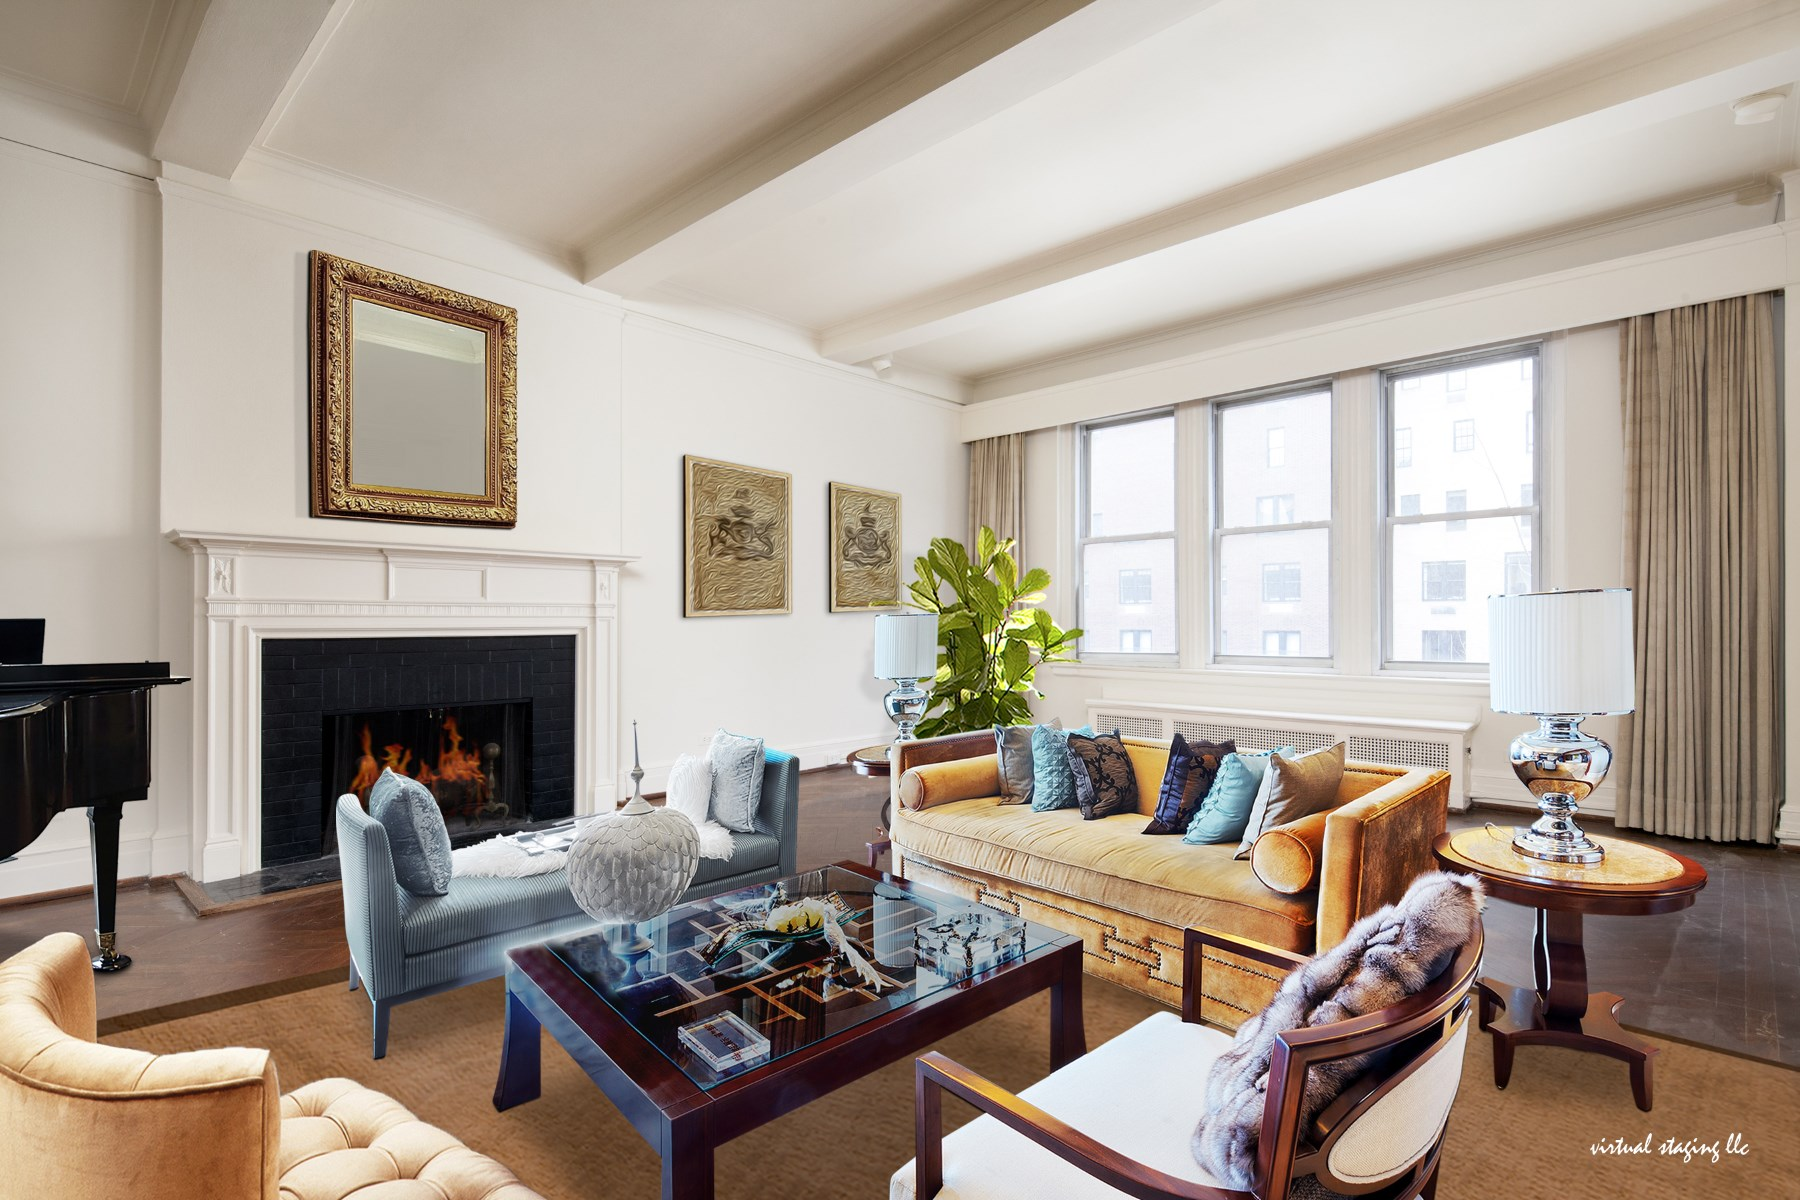 Co-op for Sale at 33 East 70th Street, Apt. 8D 33 East 70th Street Apt 8d Upper East Side, New York, New York 10021 United States